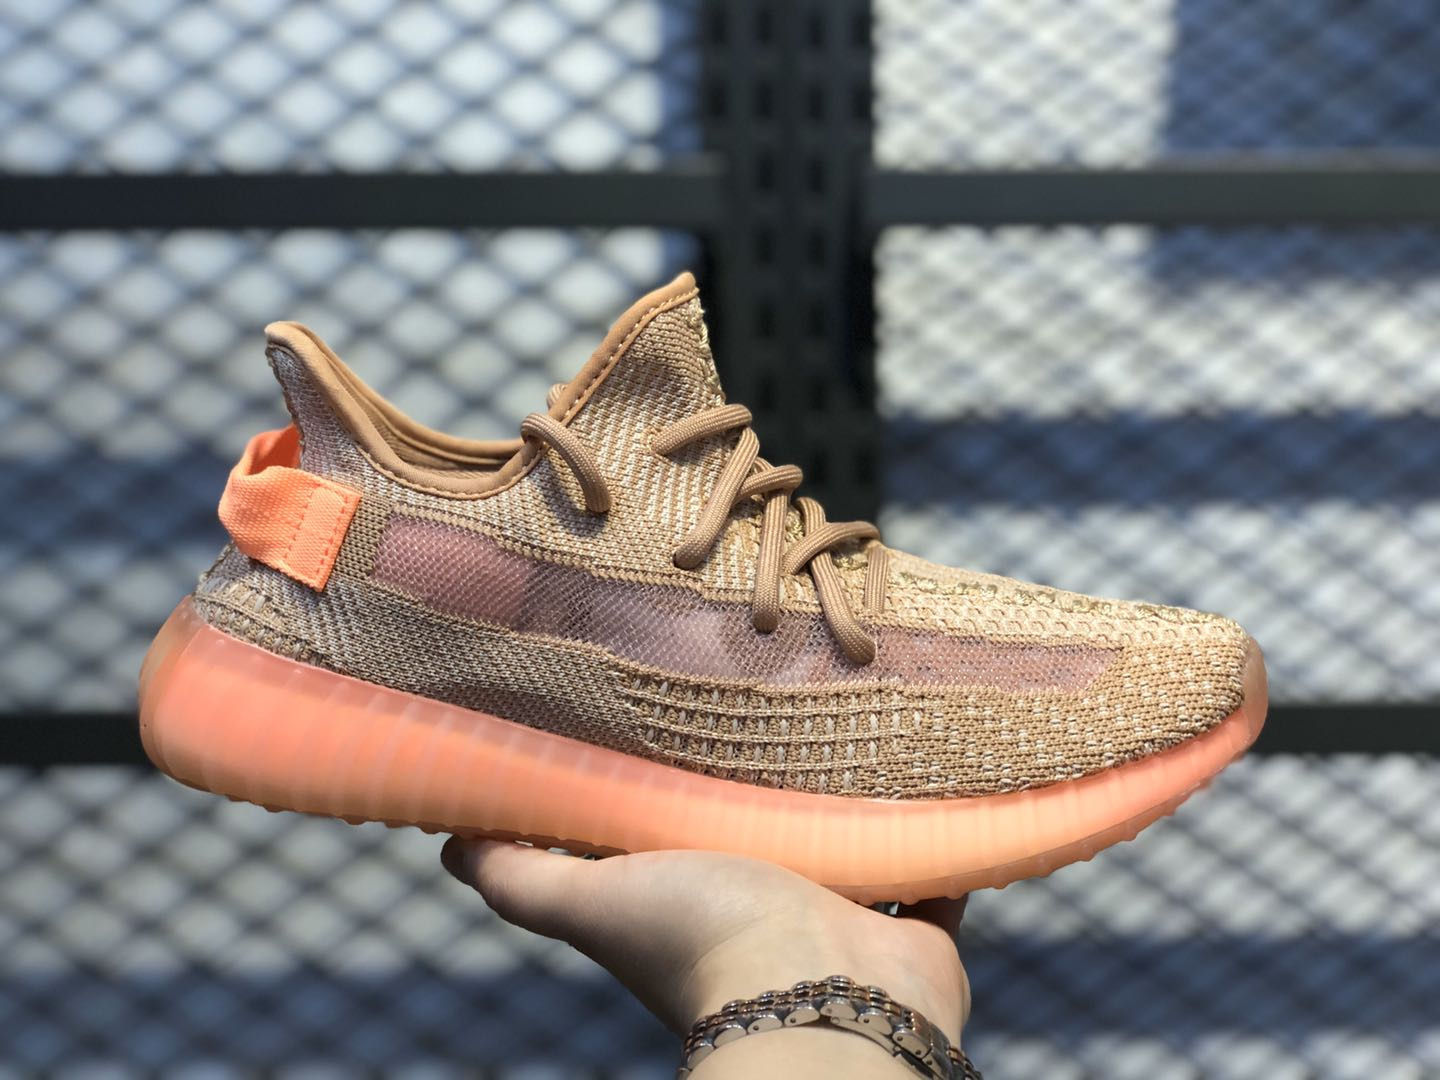 Adidas Yeezy Boost 350 v2 Clay/Clay/Clay For Sale BY1605